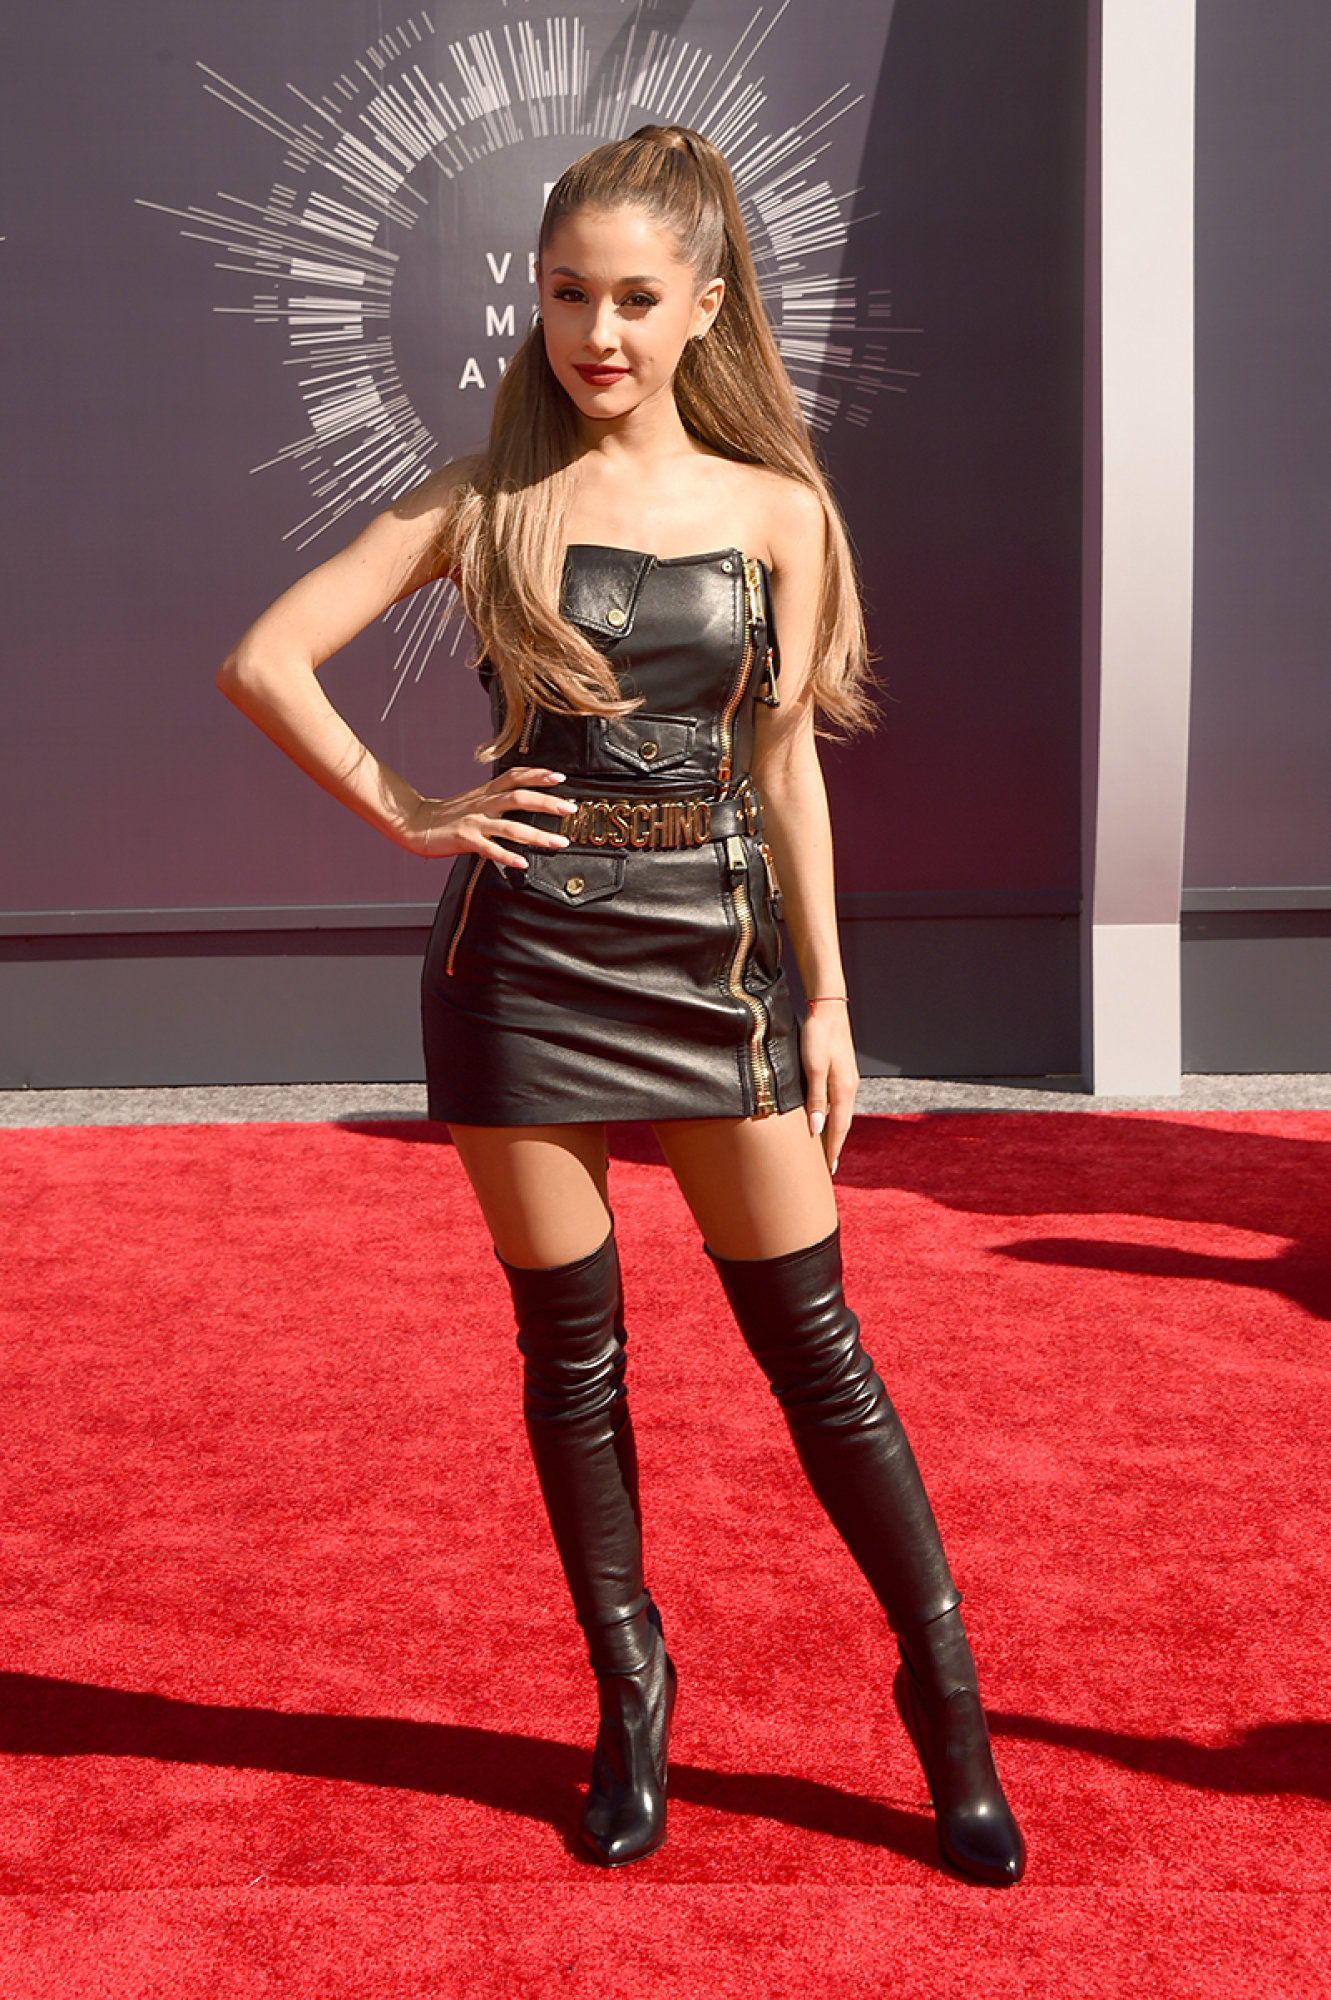 Ariana Grande In Moschino At The 2014 Mtv Video Music Awards Fashion Sizzle